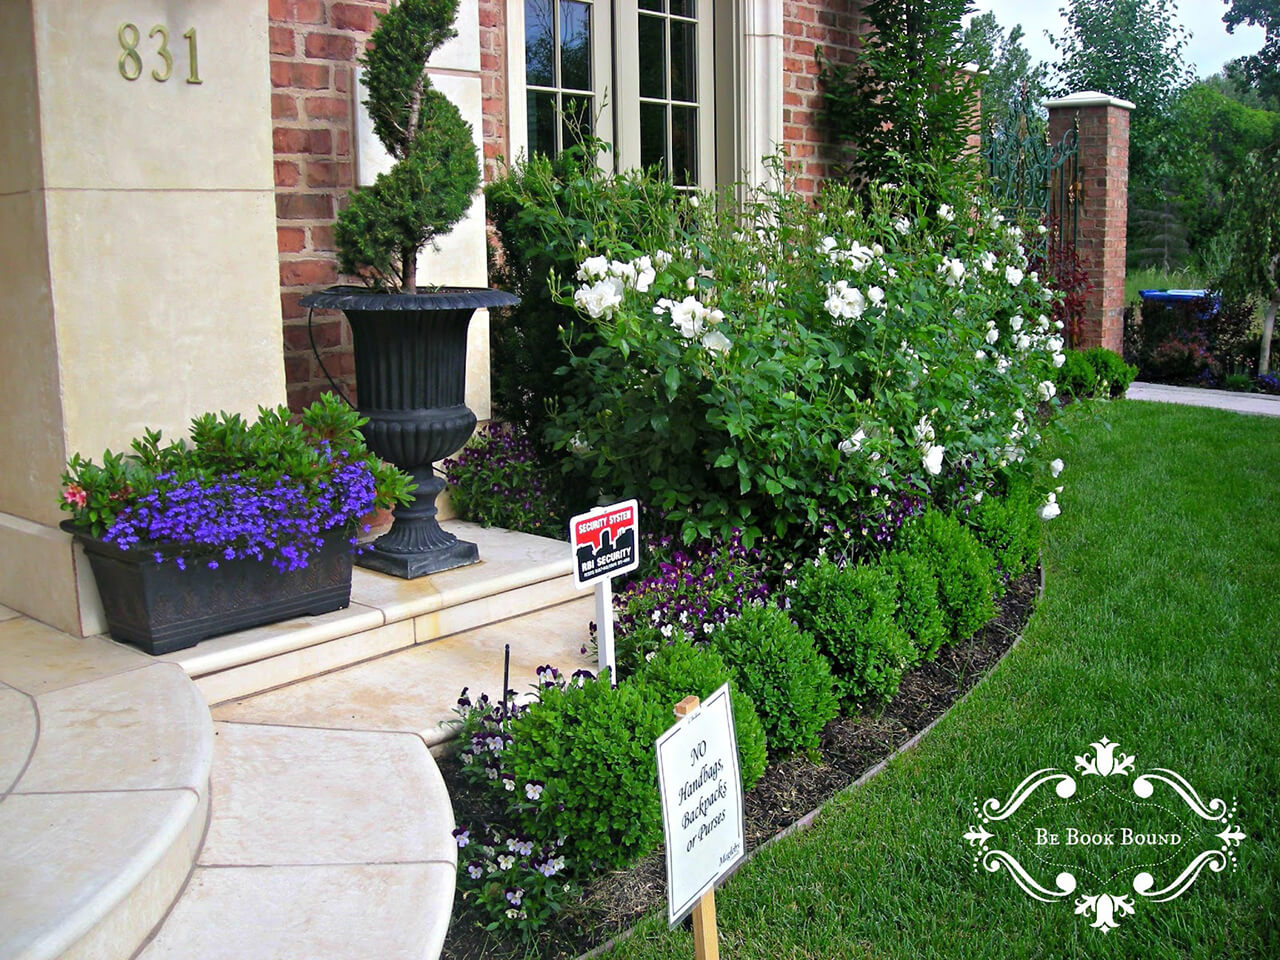 50 Best Front Yard Landscaping Ideas and Garden Designs ... on Small Yard Landscaping Ideas id=51401